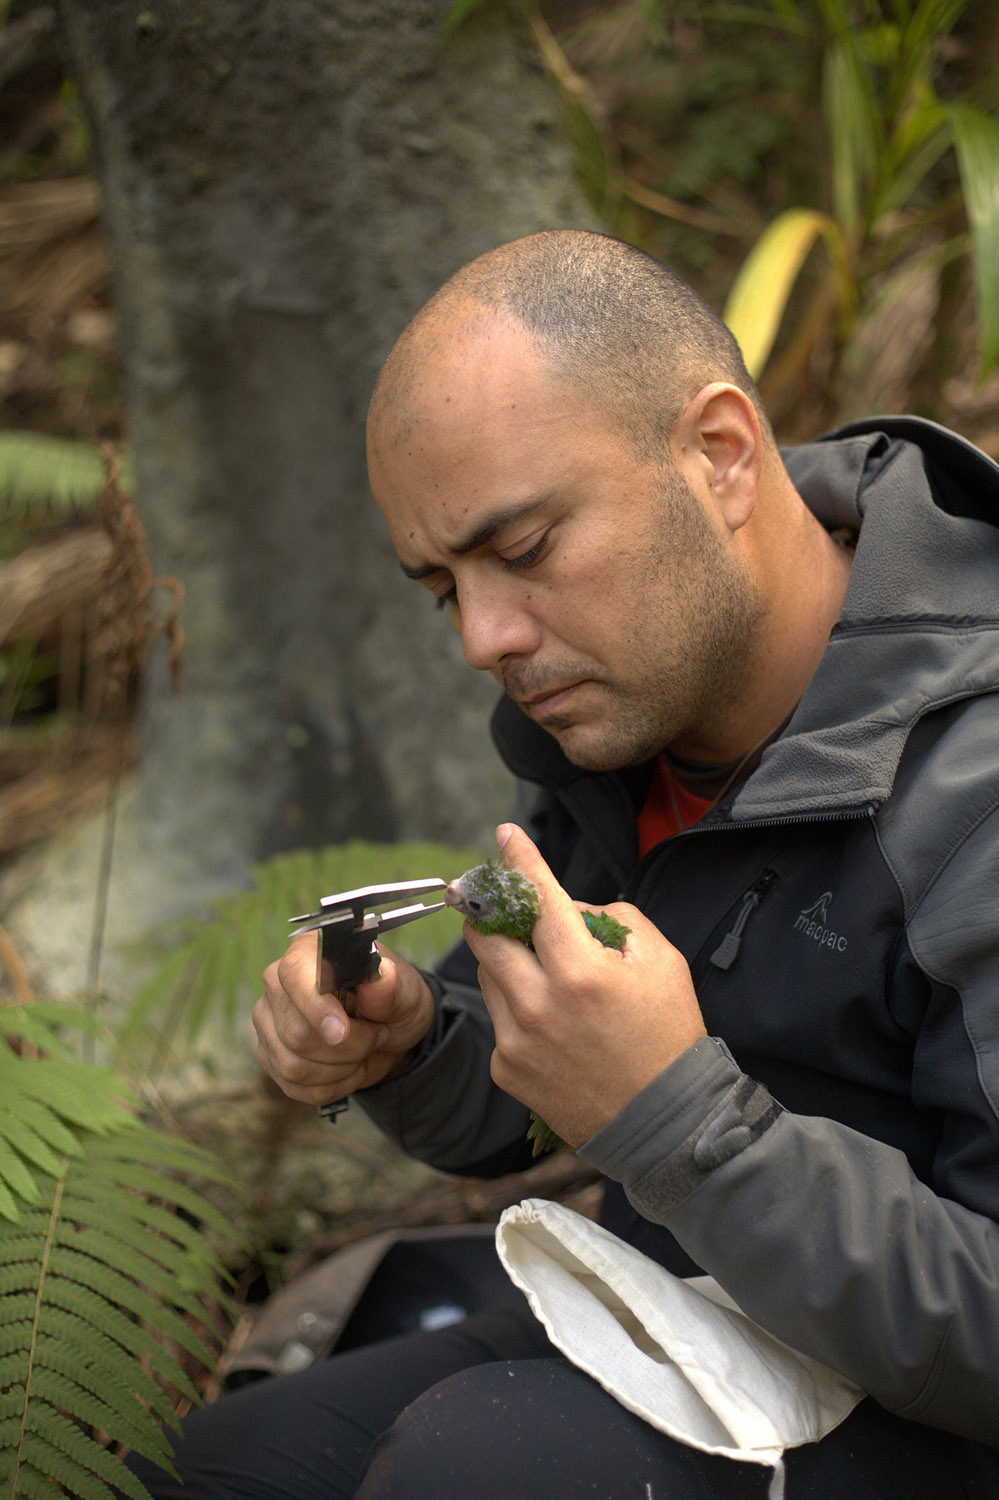 island-conservation-green-parrot-norfolk-island-ray-nias-gallery-5